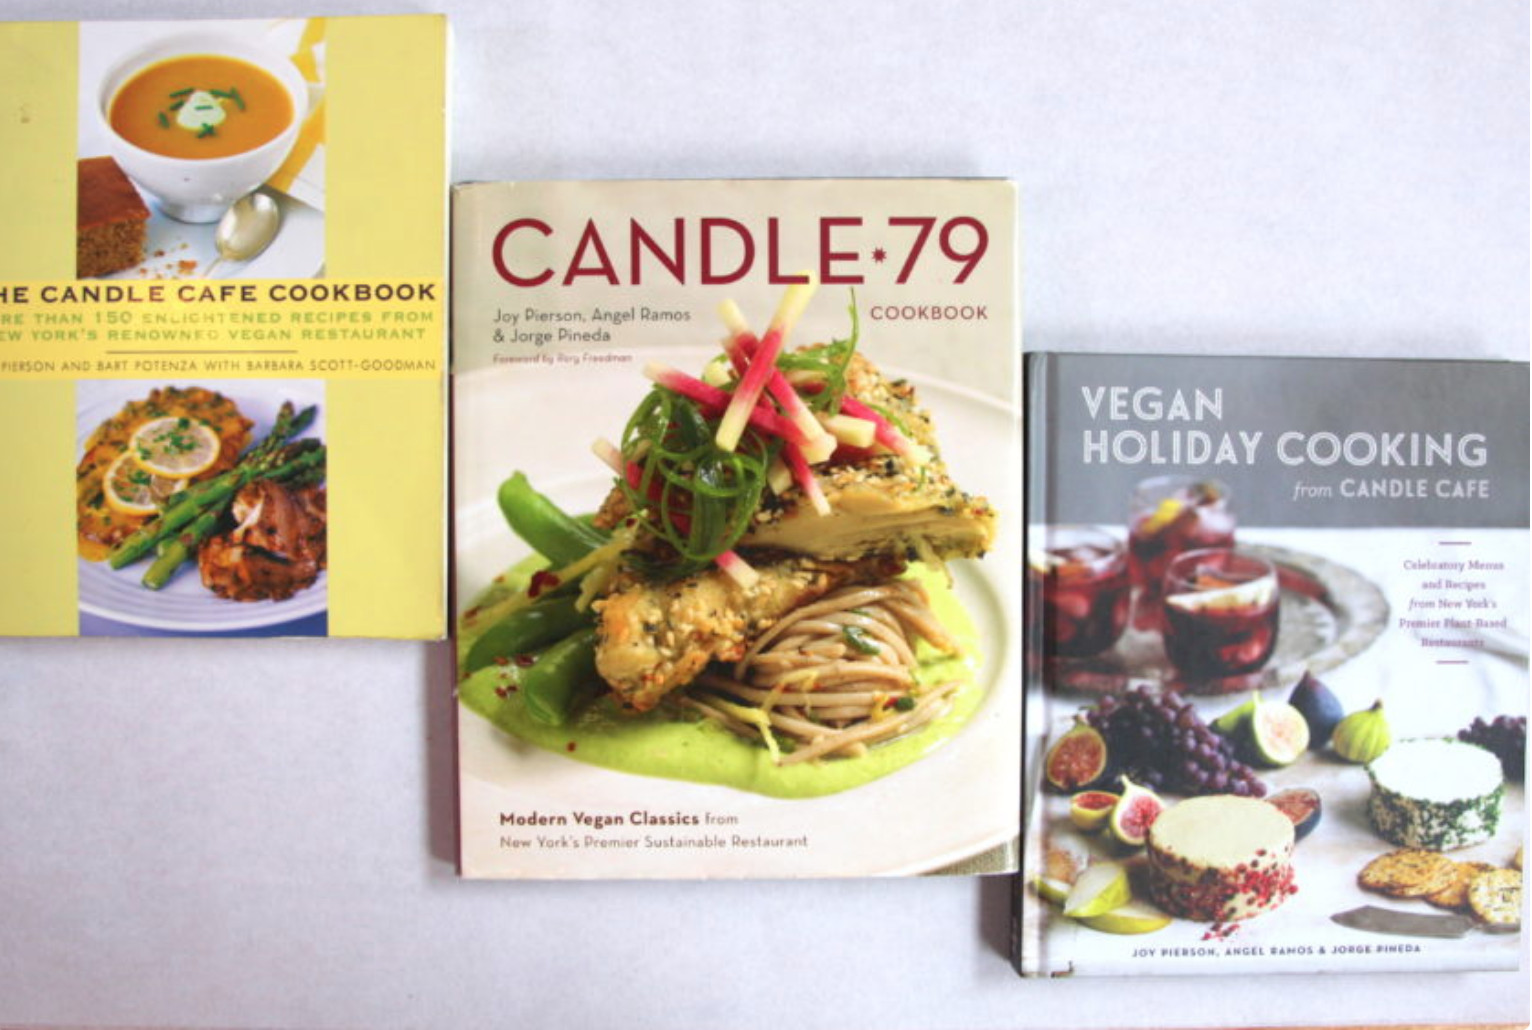 Plant Based Cooking for the Holidays with Candle Cafe owner Joy Pierson @ Mike's Organics @ Mike's Organic @ 377 Fairfield Avenue, Stamford, Connecticut, 06902, United States